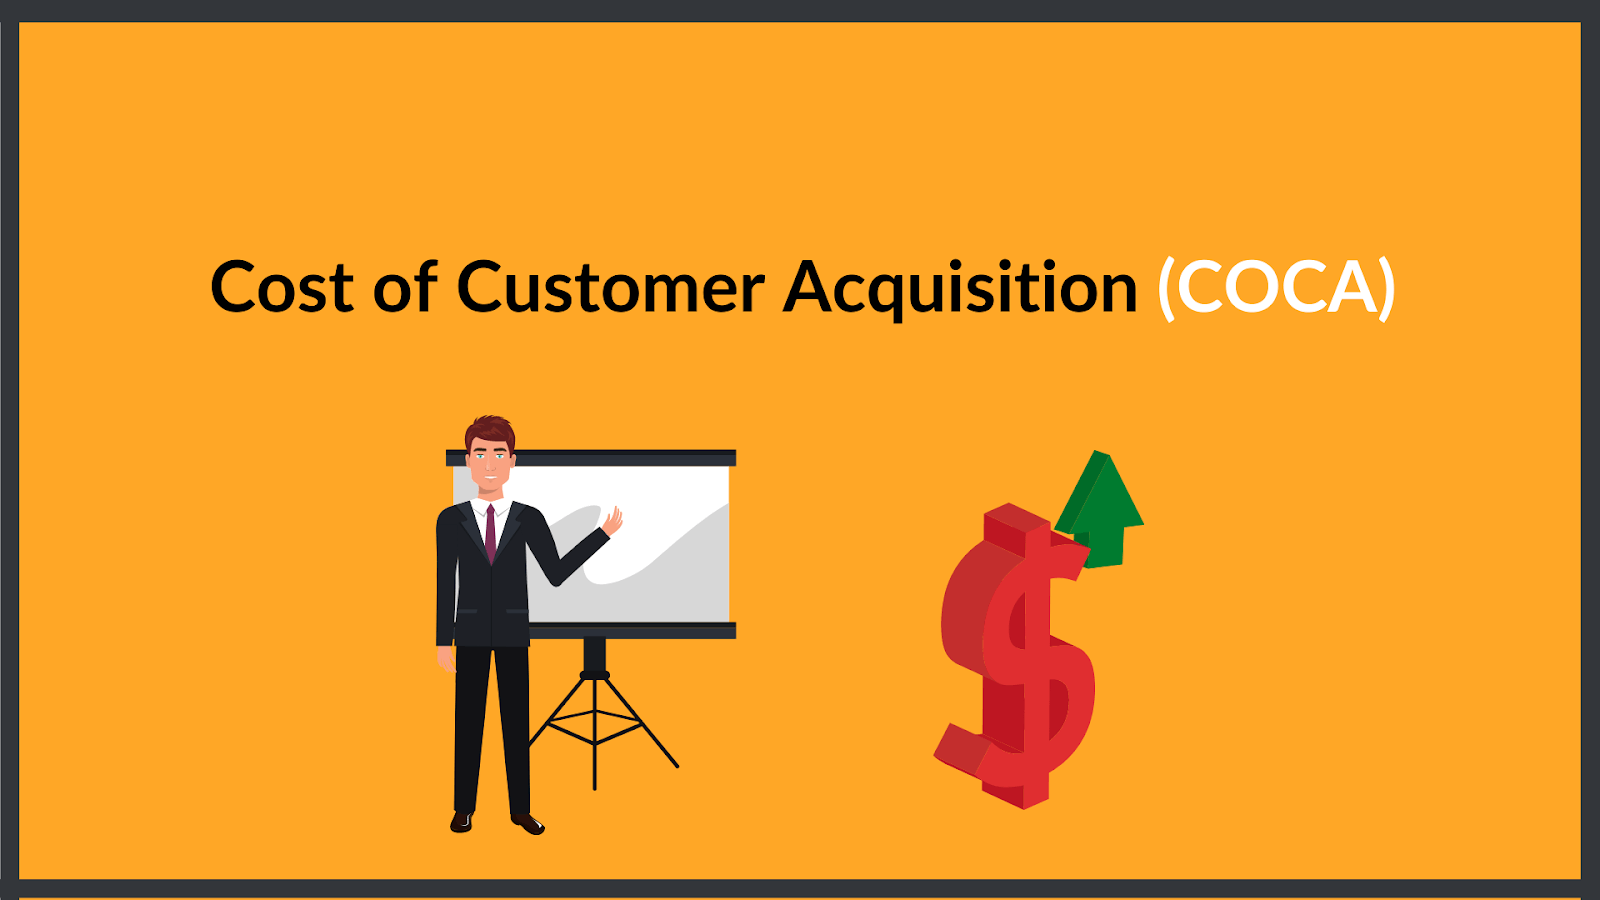 cost of customer acquisition (coca), also known as CAC